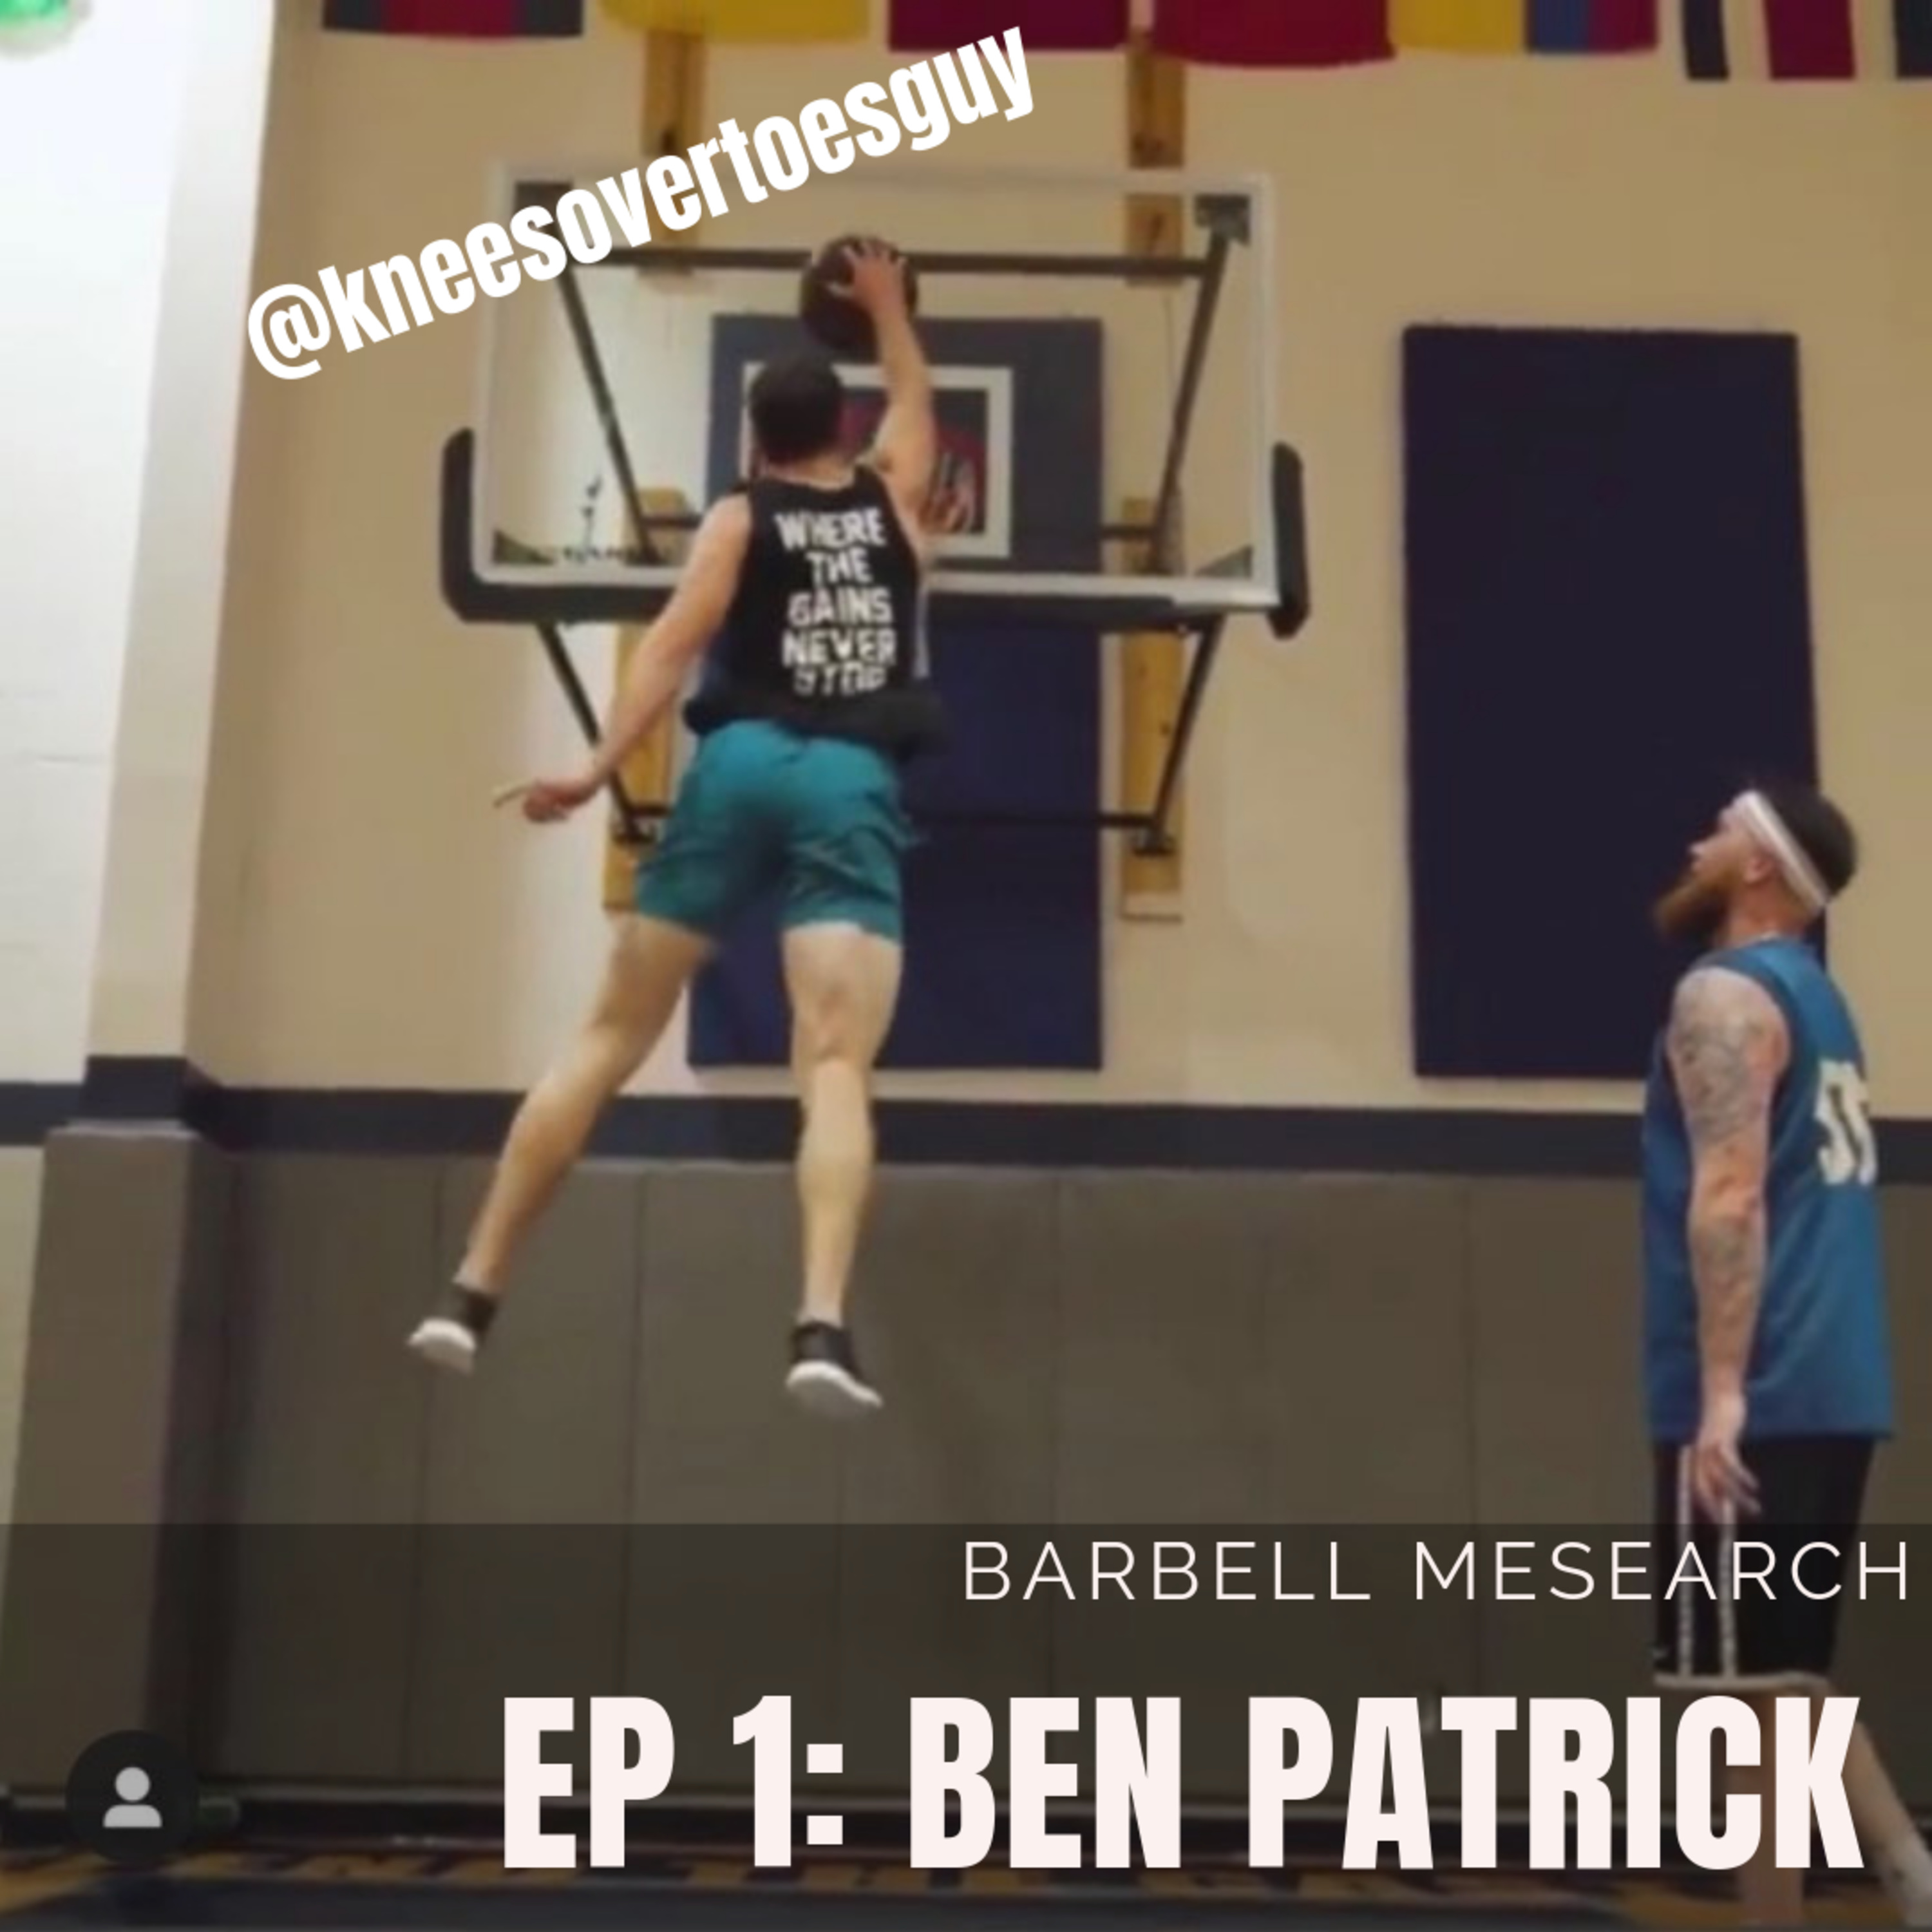 1. Ben Patrick: How Hard Are You Willing To Work - Barbell Mesearch